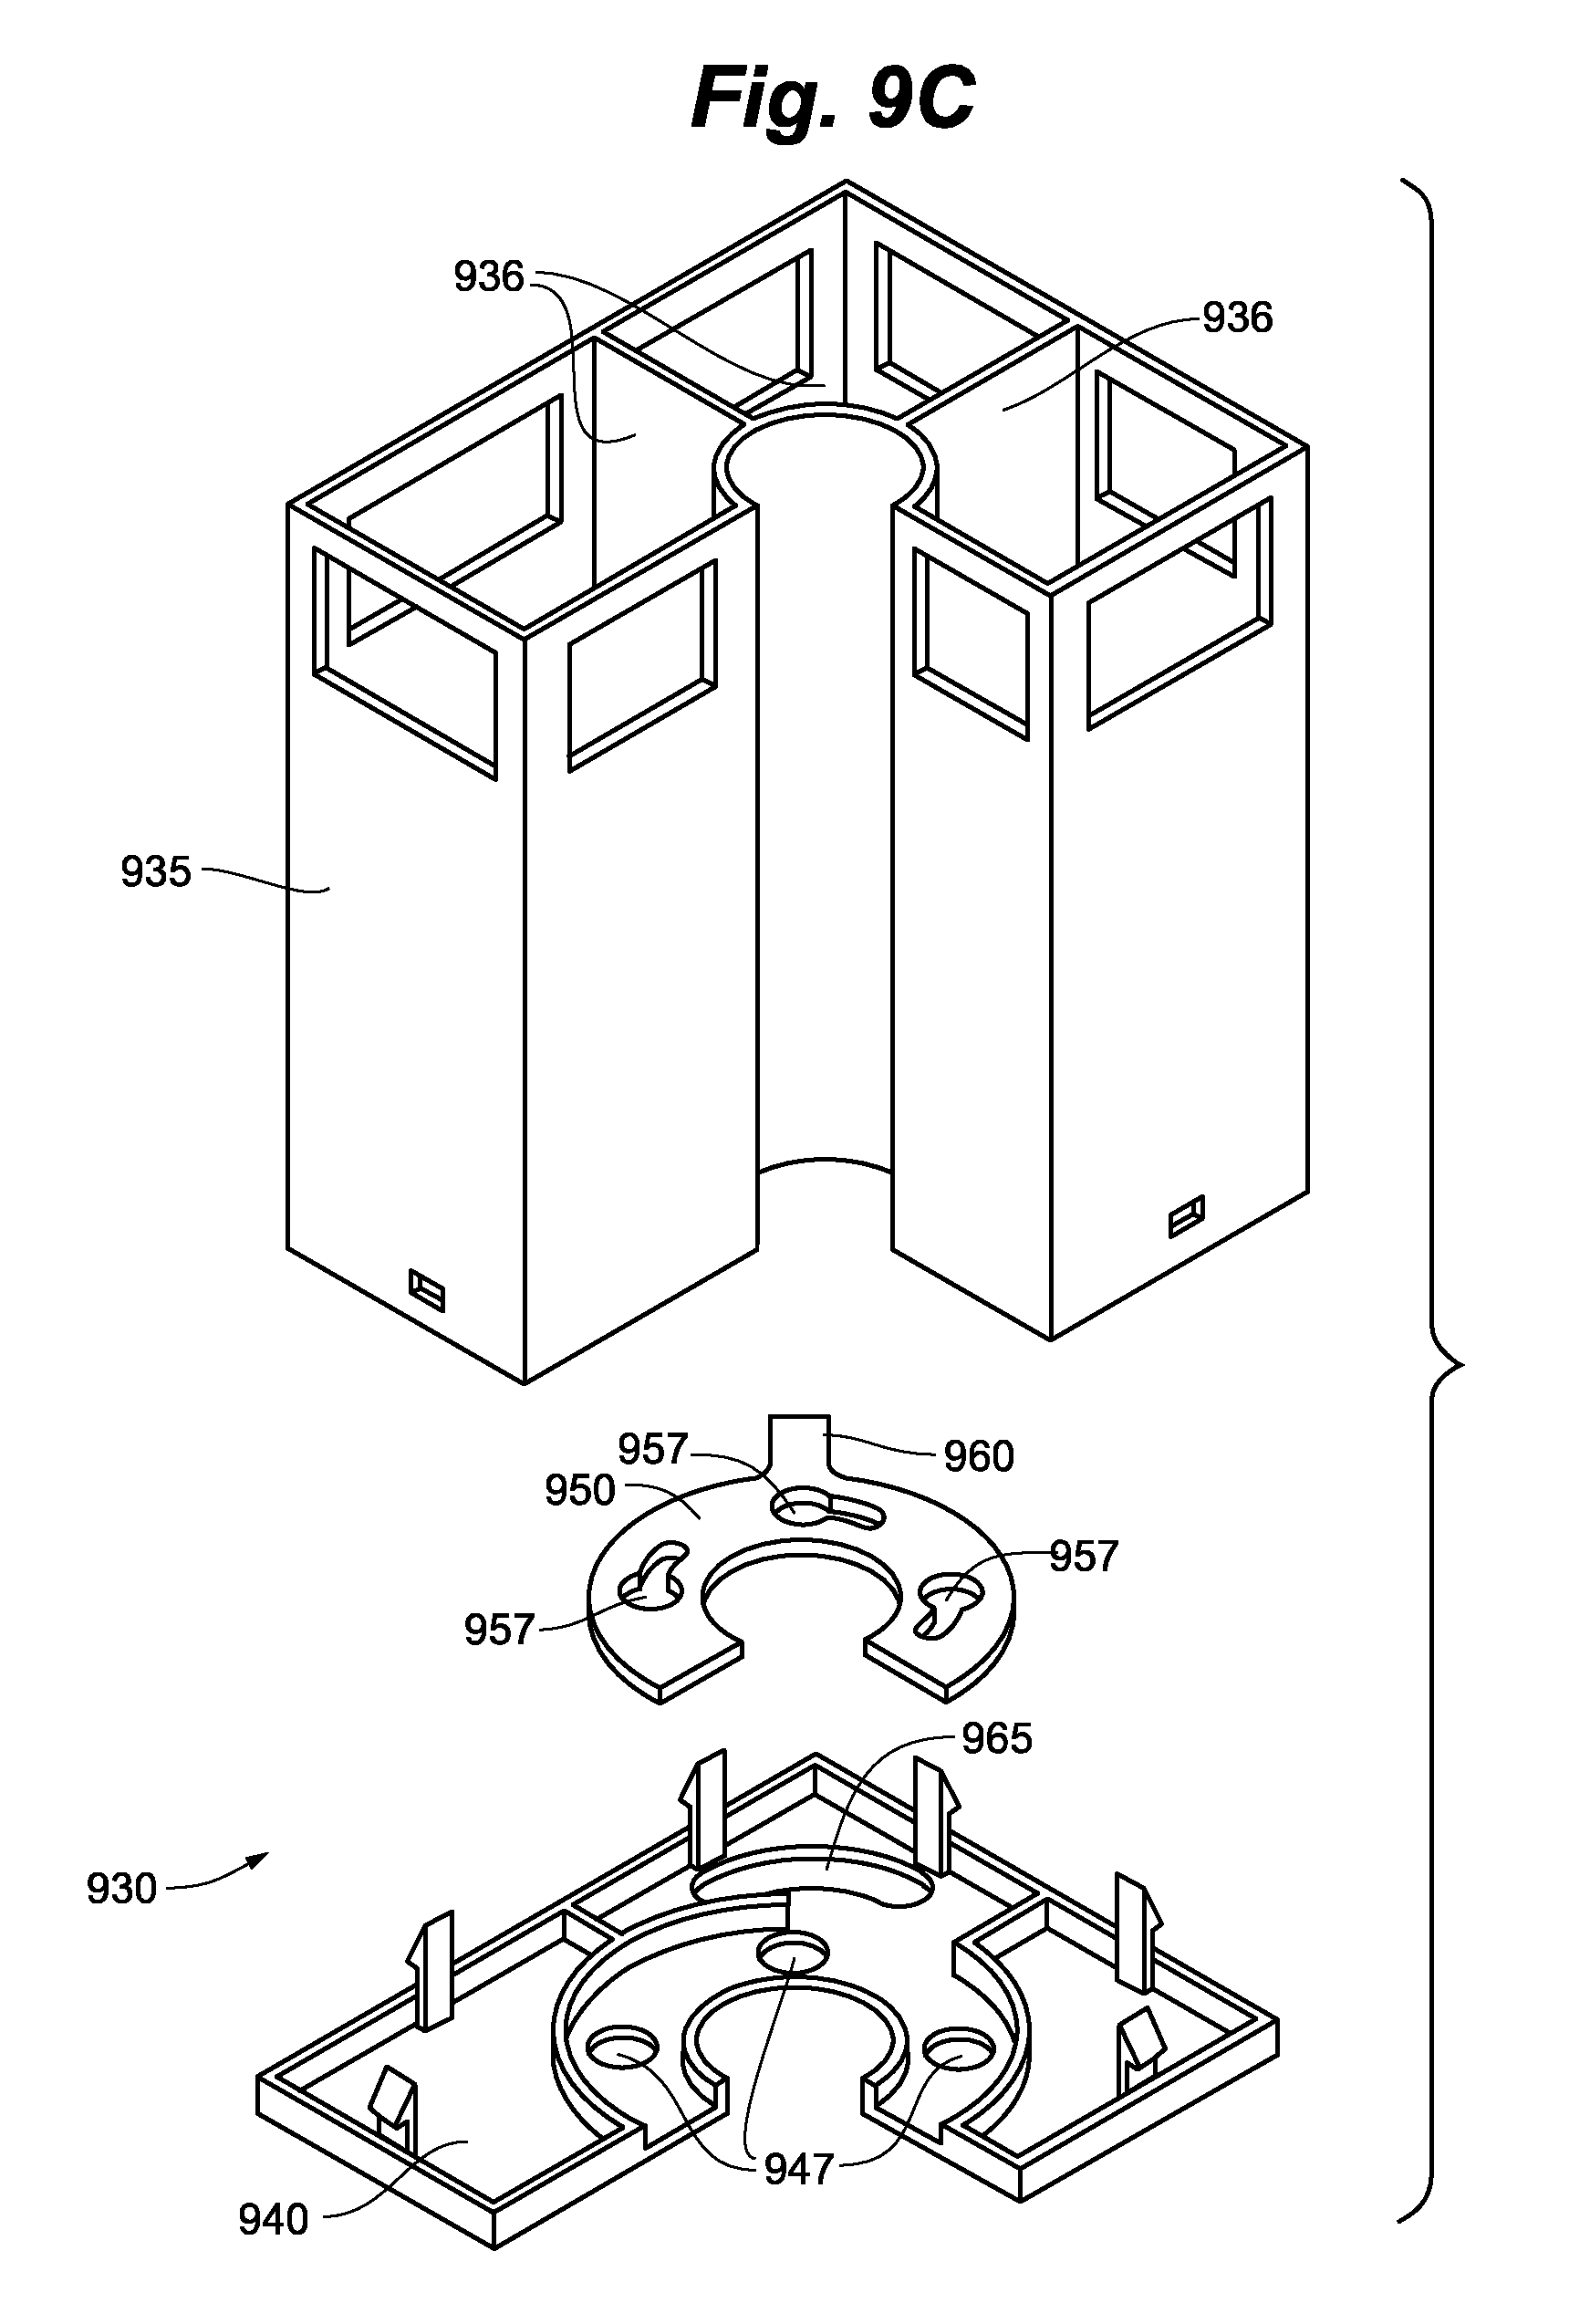 Chambre Implantable Cip Patent Us20100304494 Microflow Analytical System Google Patents